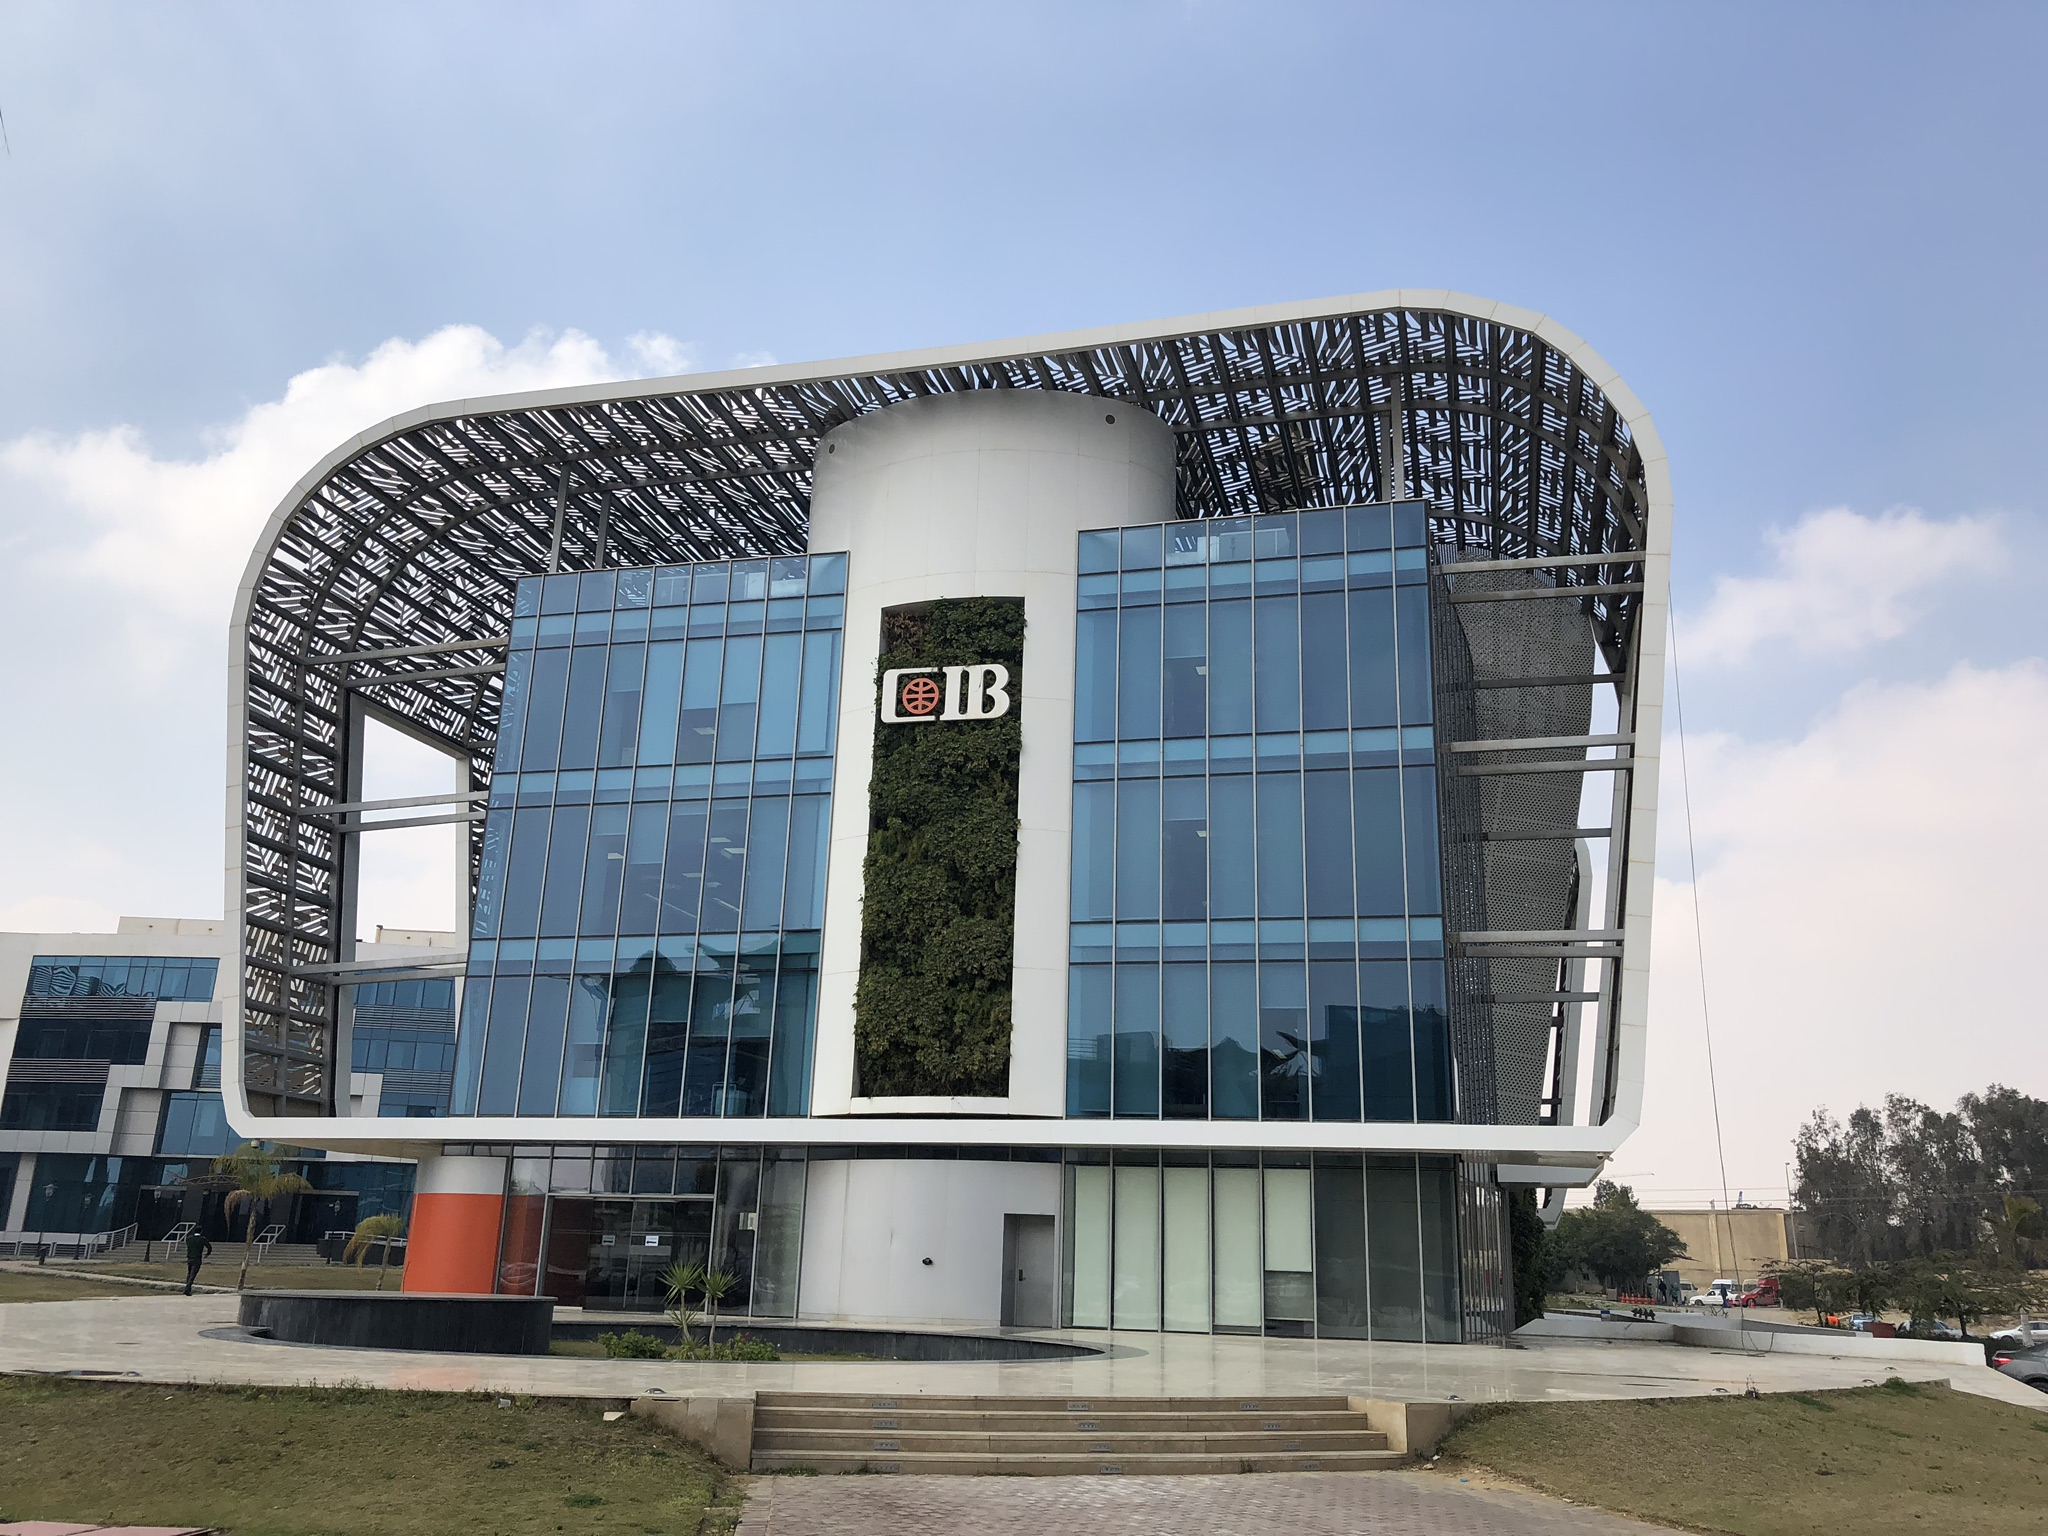 Commercial International Bank - CIB